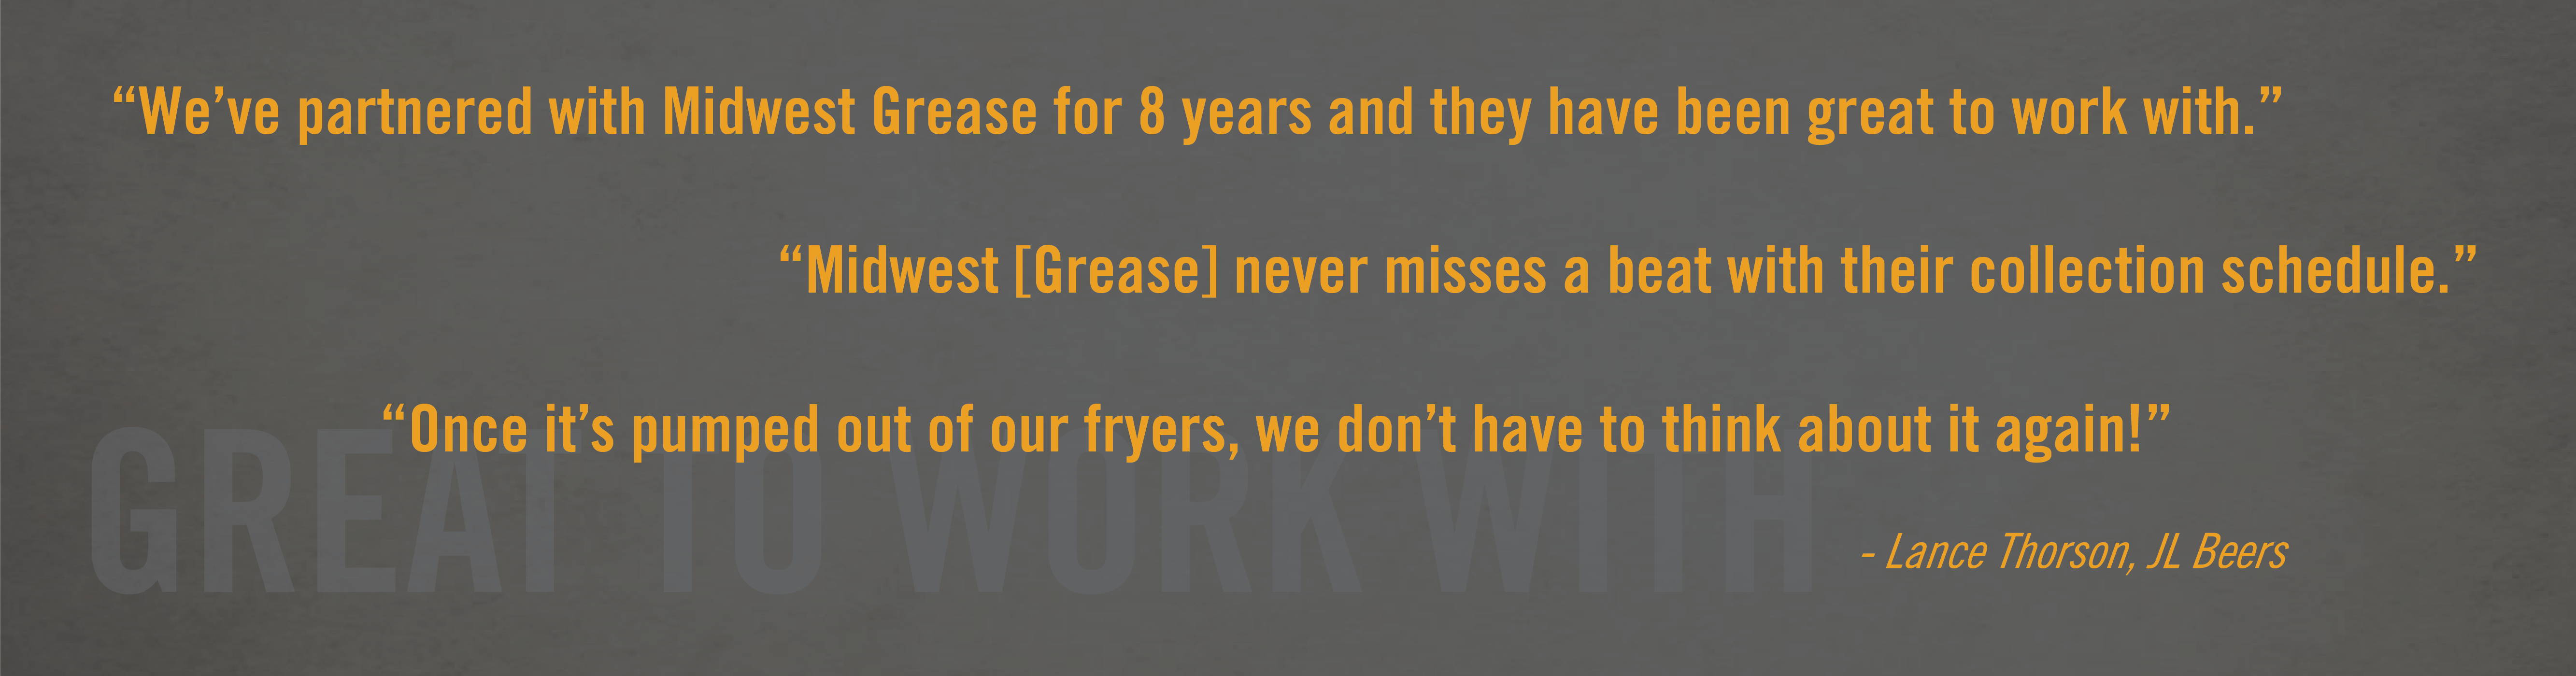 Testimonial: We've partnered with Midwest Grease for 8 years and they have been great to work with. Midwest Grease never misses a beat with their collection schedule. Once it's pumped out of our fryers, we don't have to think about it again! -Lance Thorson, JL Beers